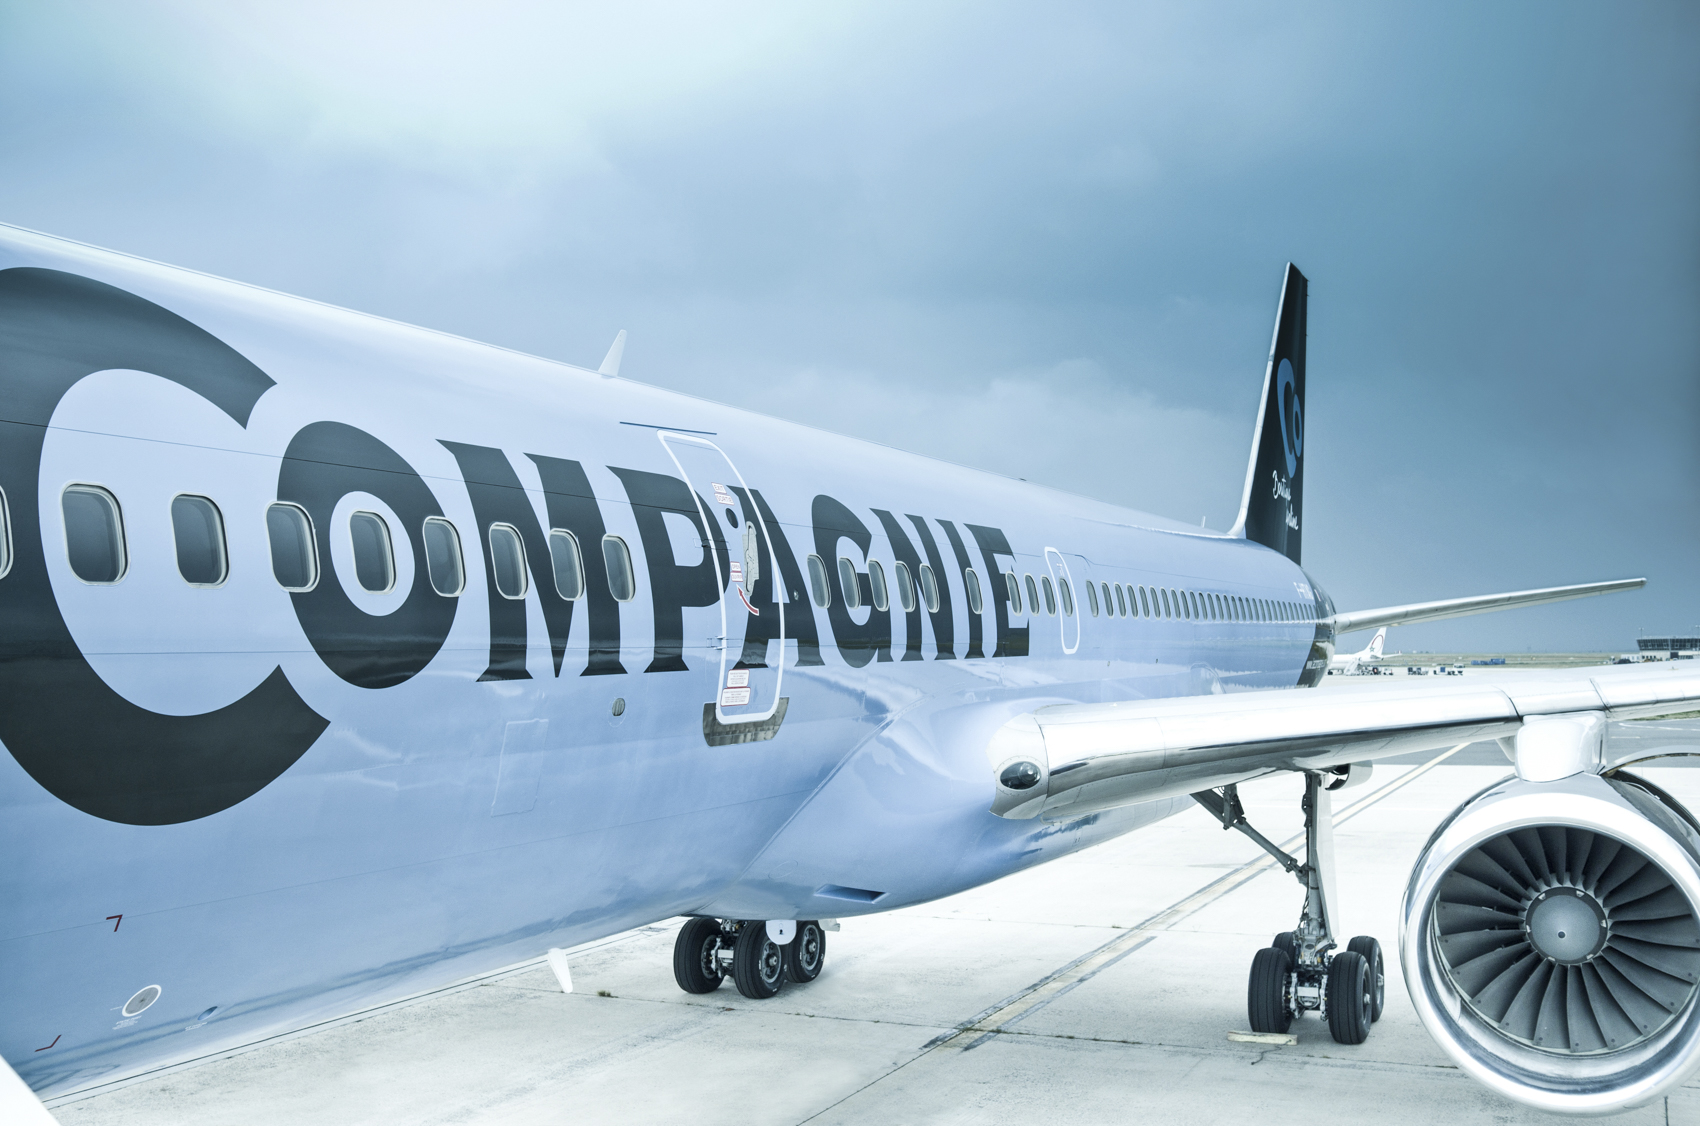 One of La Compagnie's Boeing 757-200 aircraft